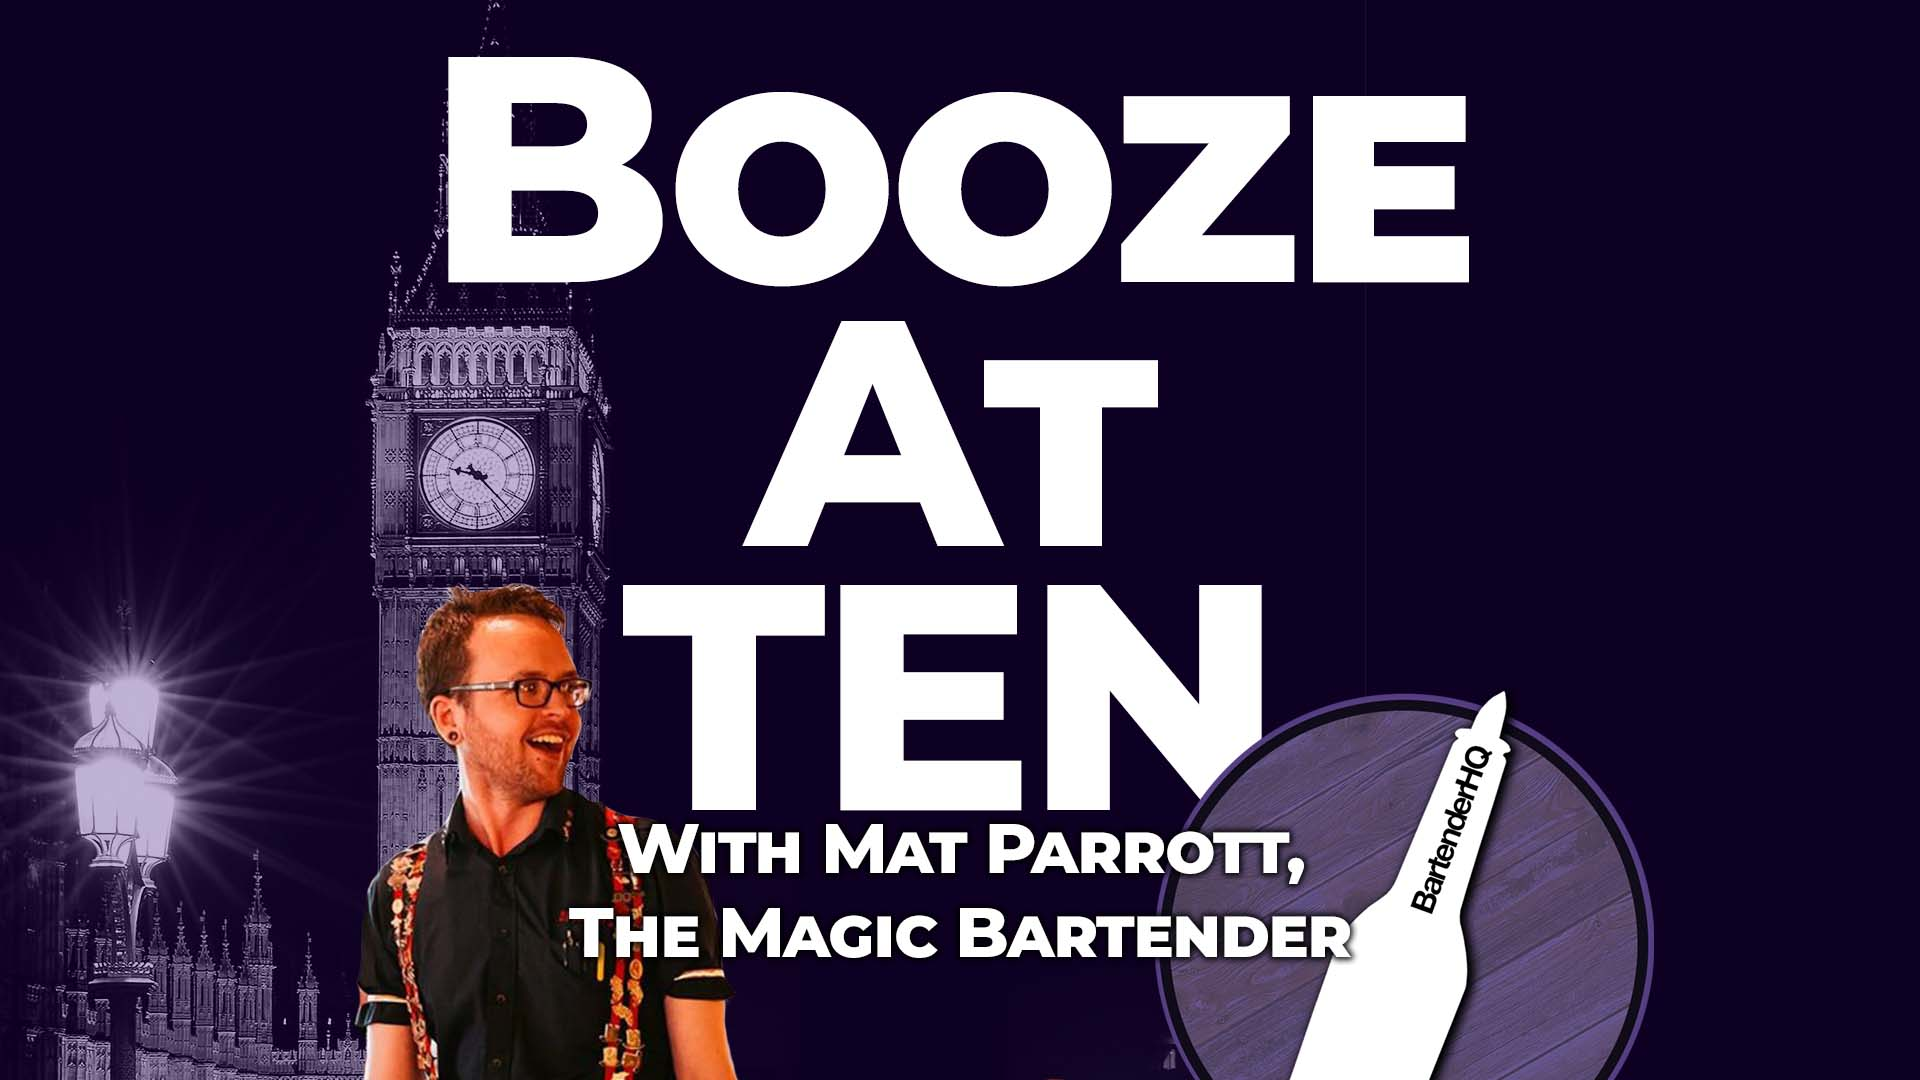 The Magic Bartender, Mat Parrott – Booze at Ten 002